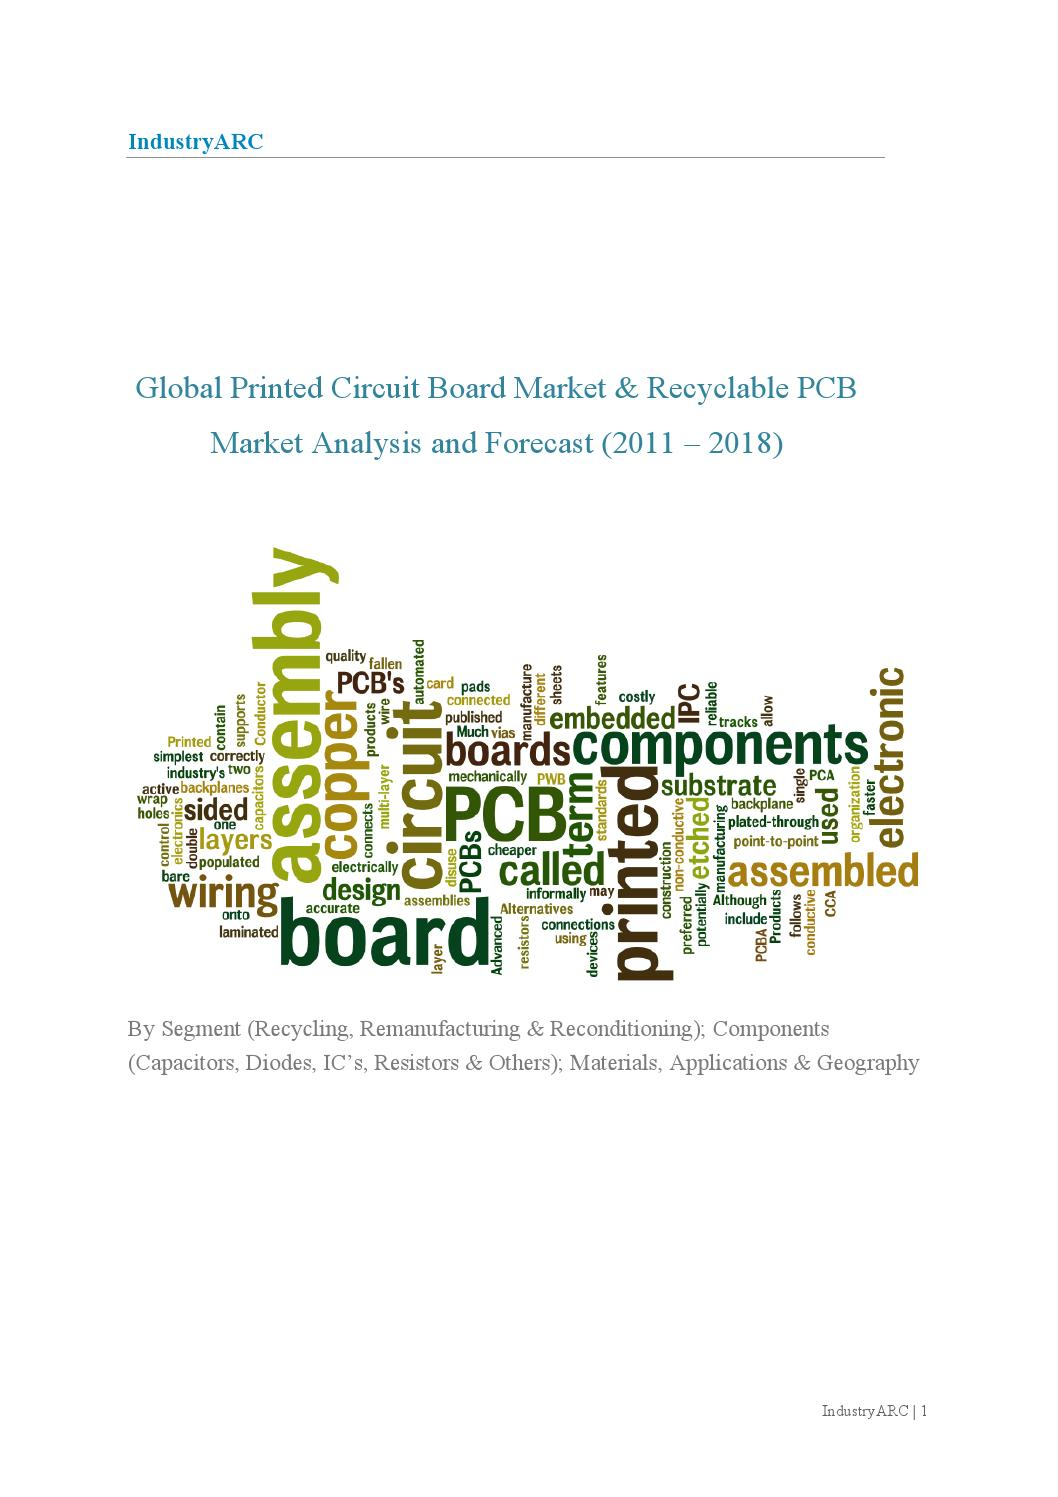 Global Printed Circuit Board Market Recyclable Pcb Analysis High Quality Computer Hdi Made In China For Sale And Forecast 2011 2018 By Sanjay Matthews Issuu